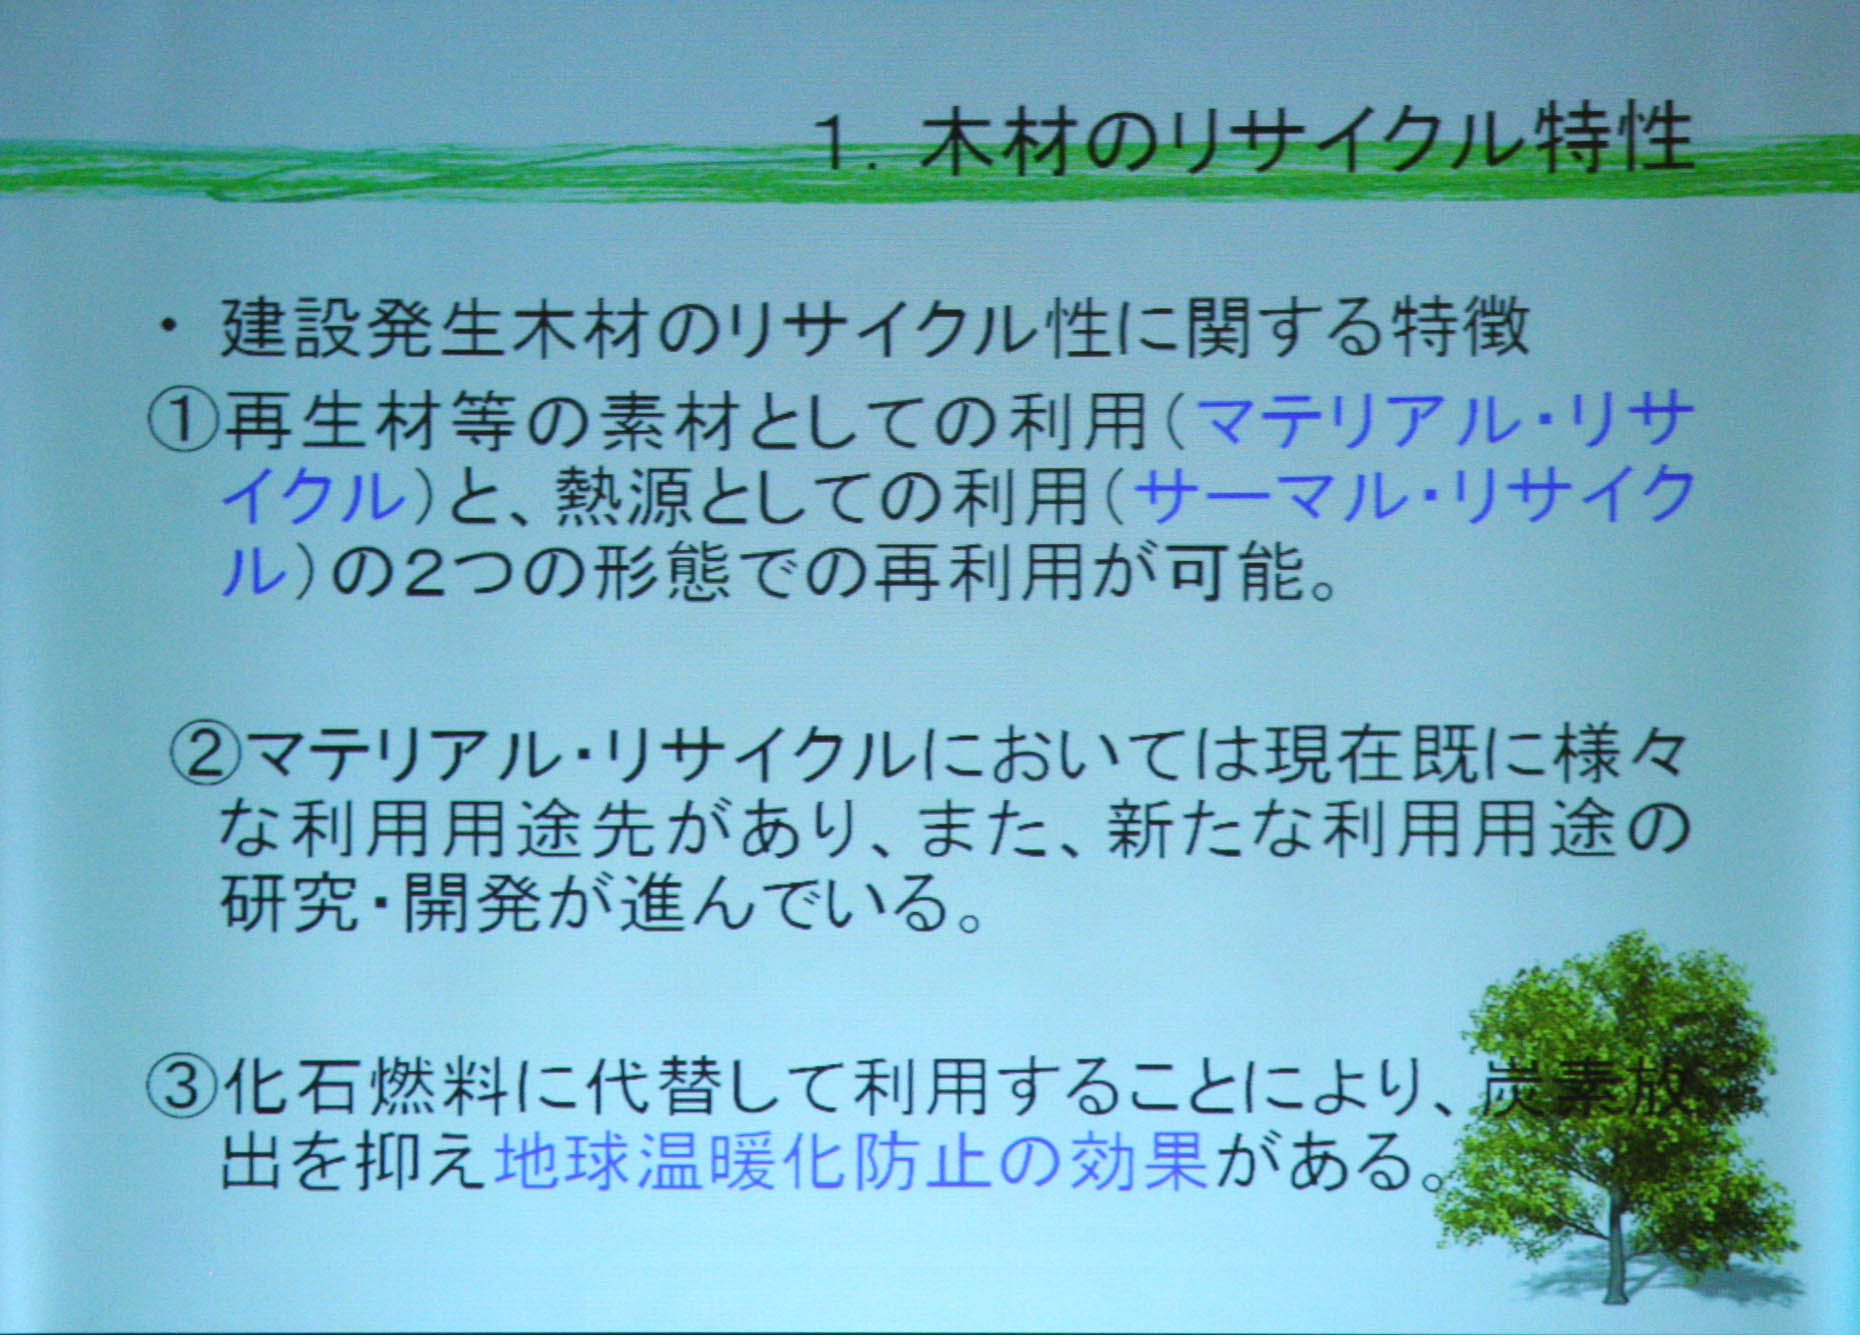 CASBEE-すまい-(戸建住宅)研修会 3:清家剛先生_e0054299_17165585.jpg